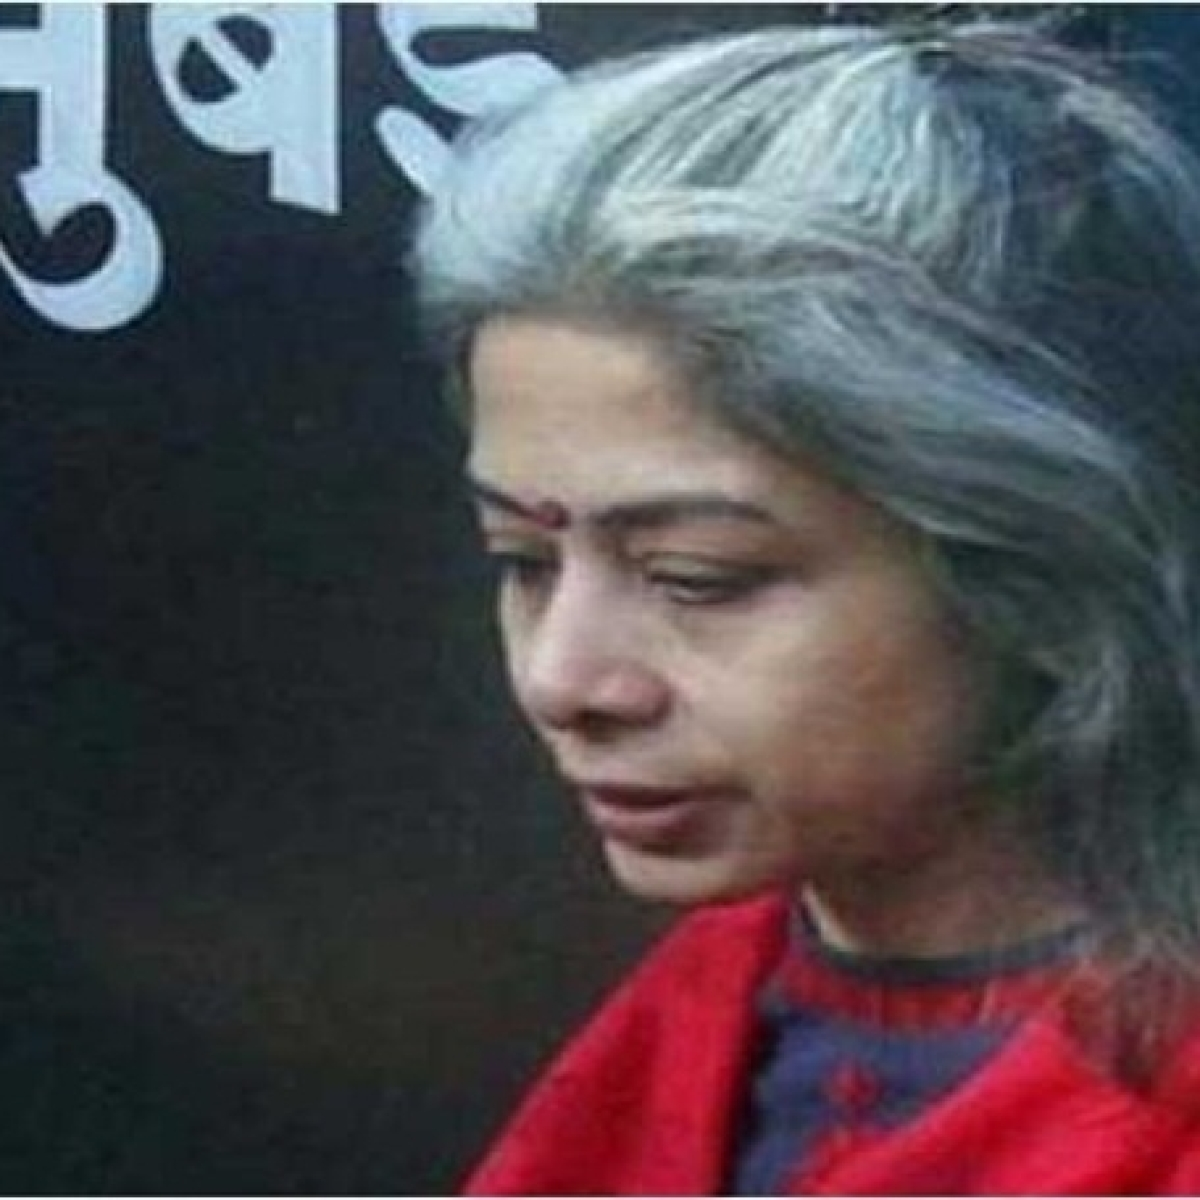 Money debited from Indrani's card to Google account: Witness